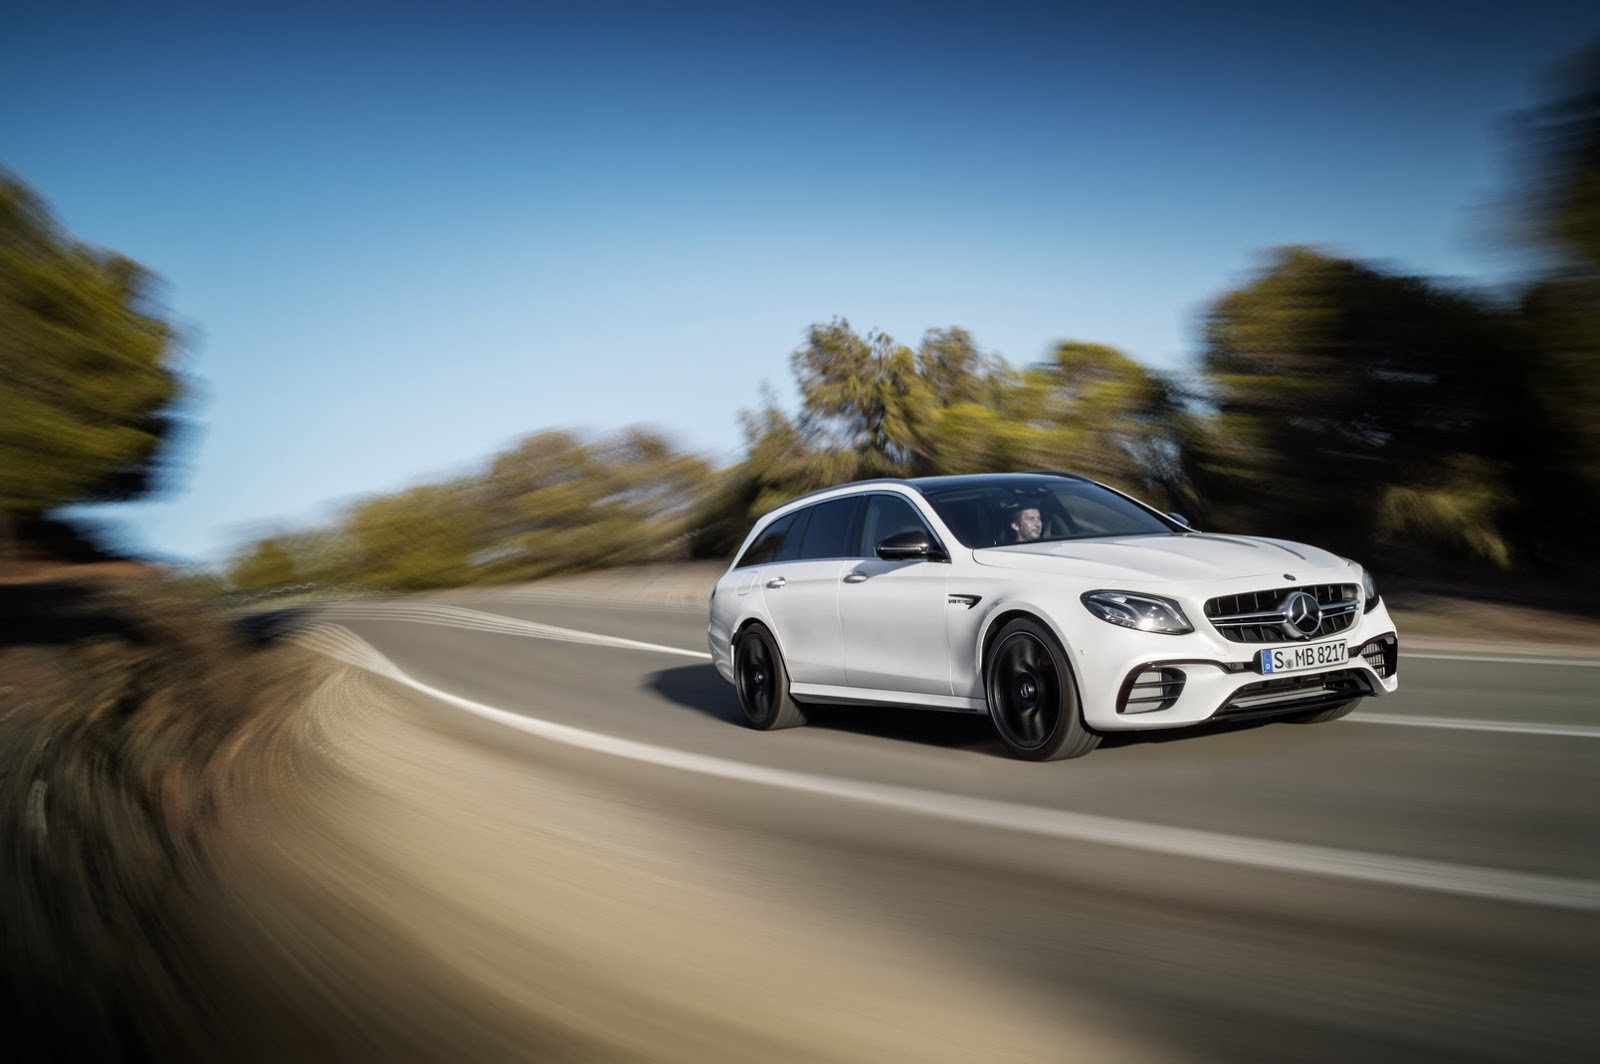 new mercedes amg e63 s wagon is wildest and fastest station wagon you can buy in the us. Black Bedroom Furniture Sets. Home Design Ideas